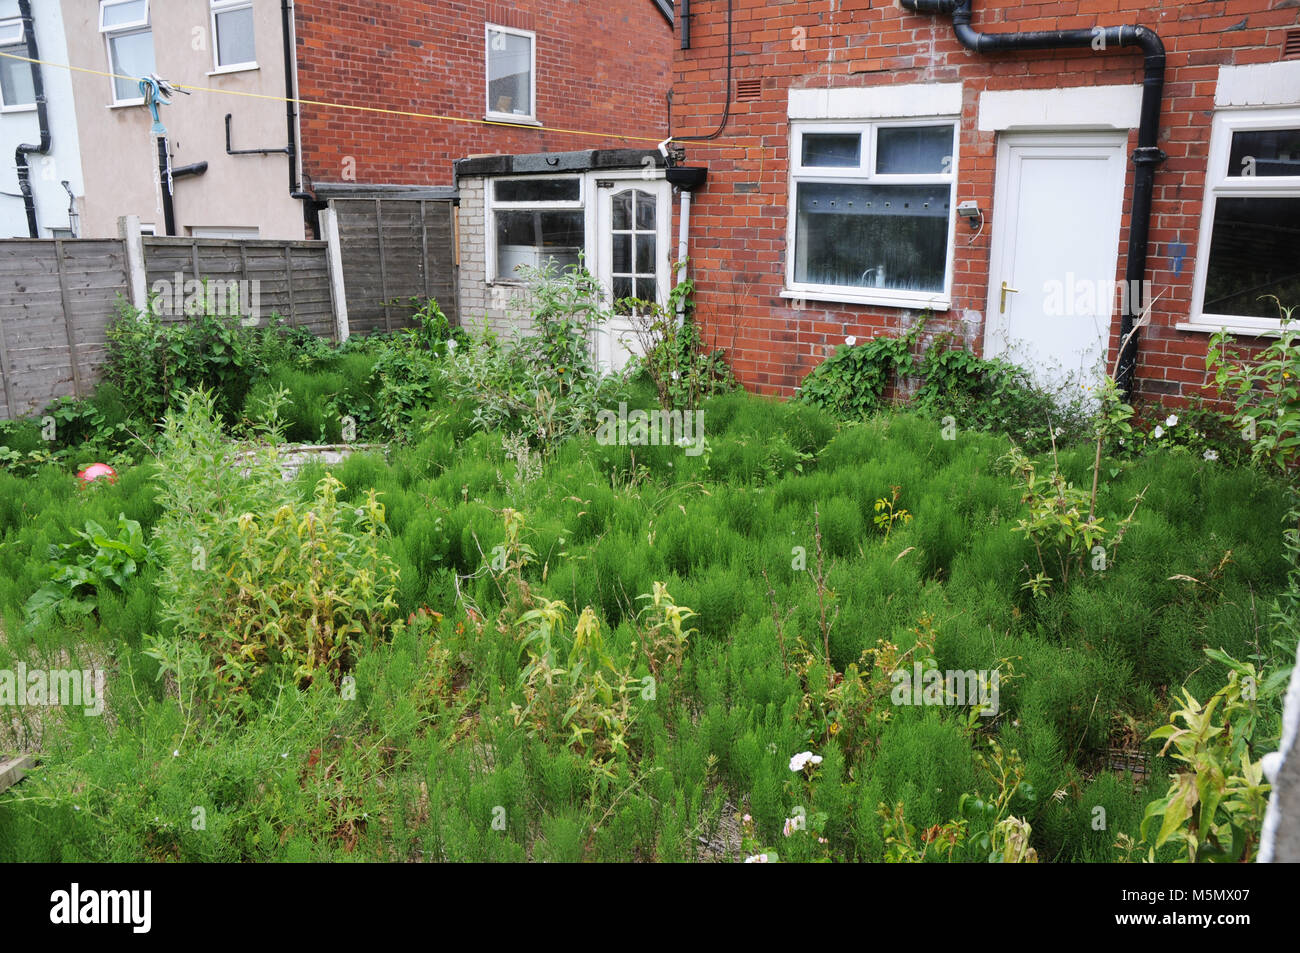 Overgrown and neglected garden. Stock Photo